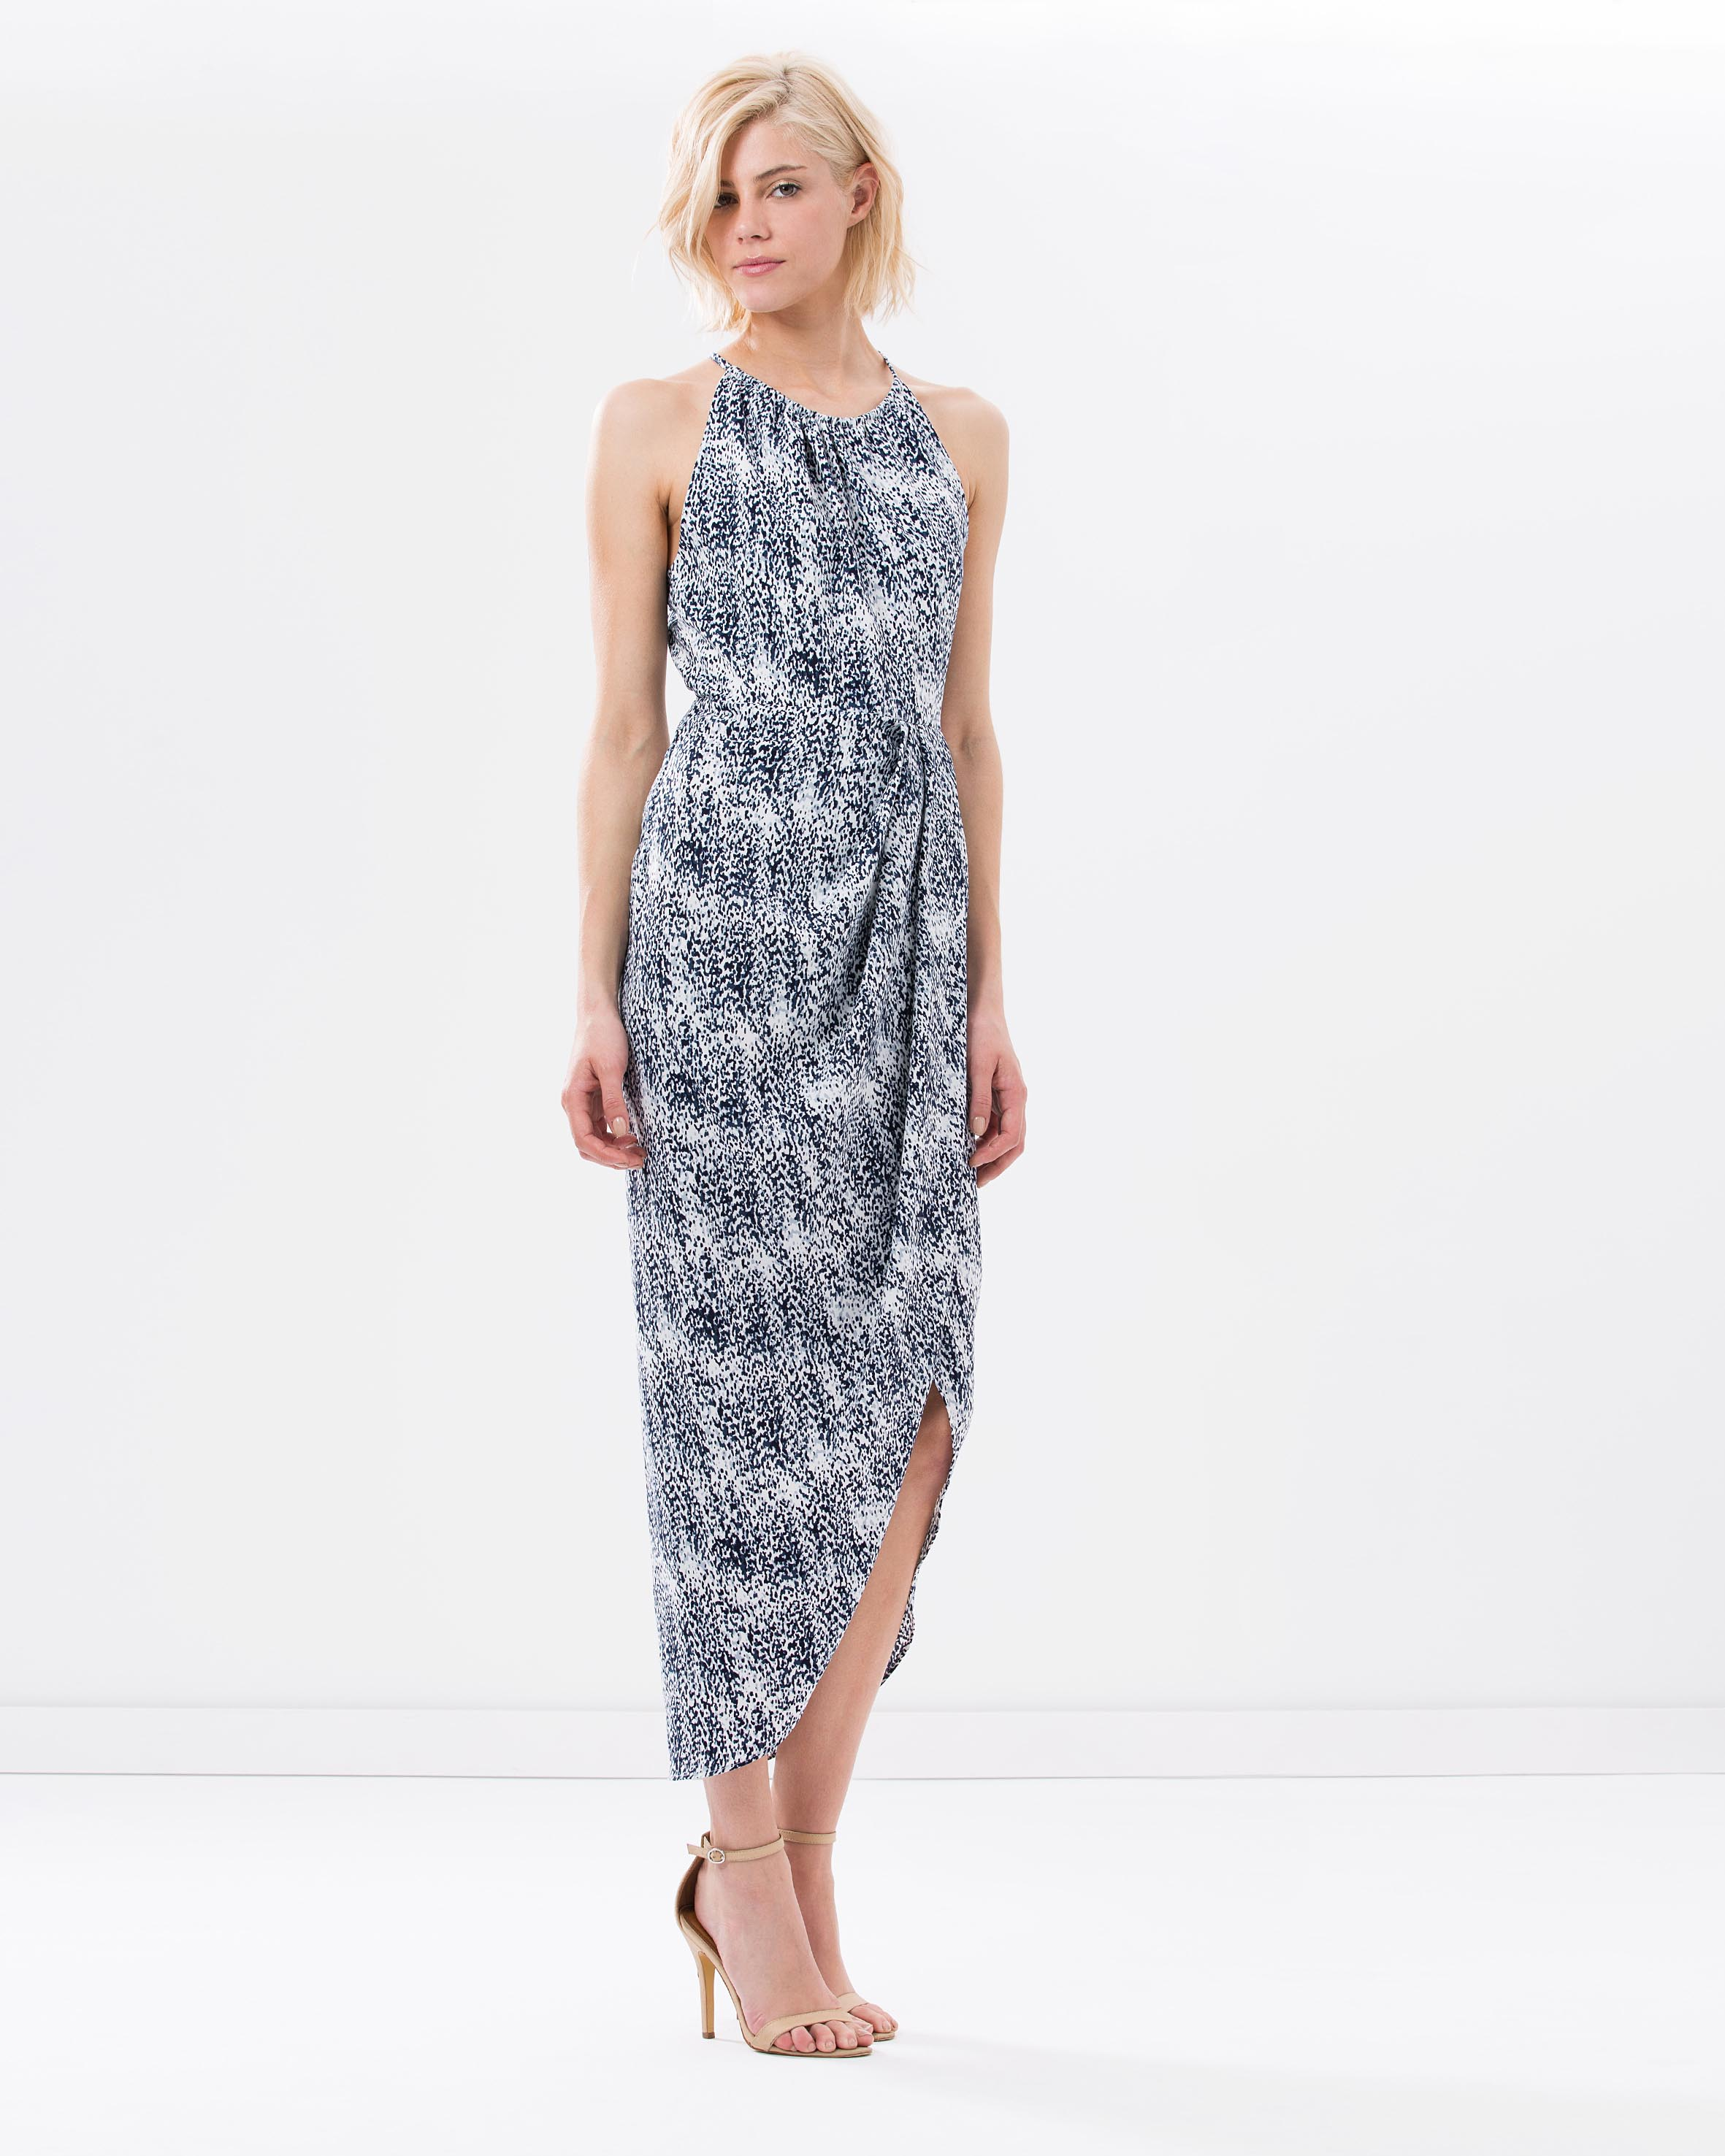 Where to buy maxi dresses online Clothing stores